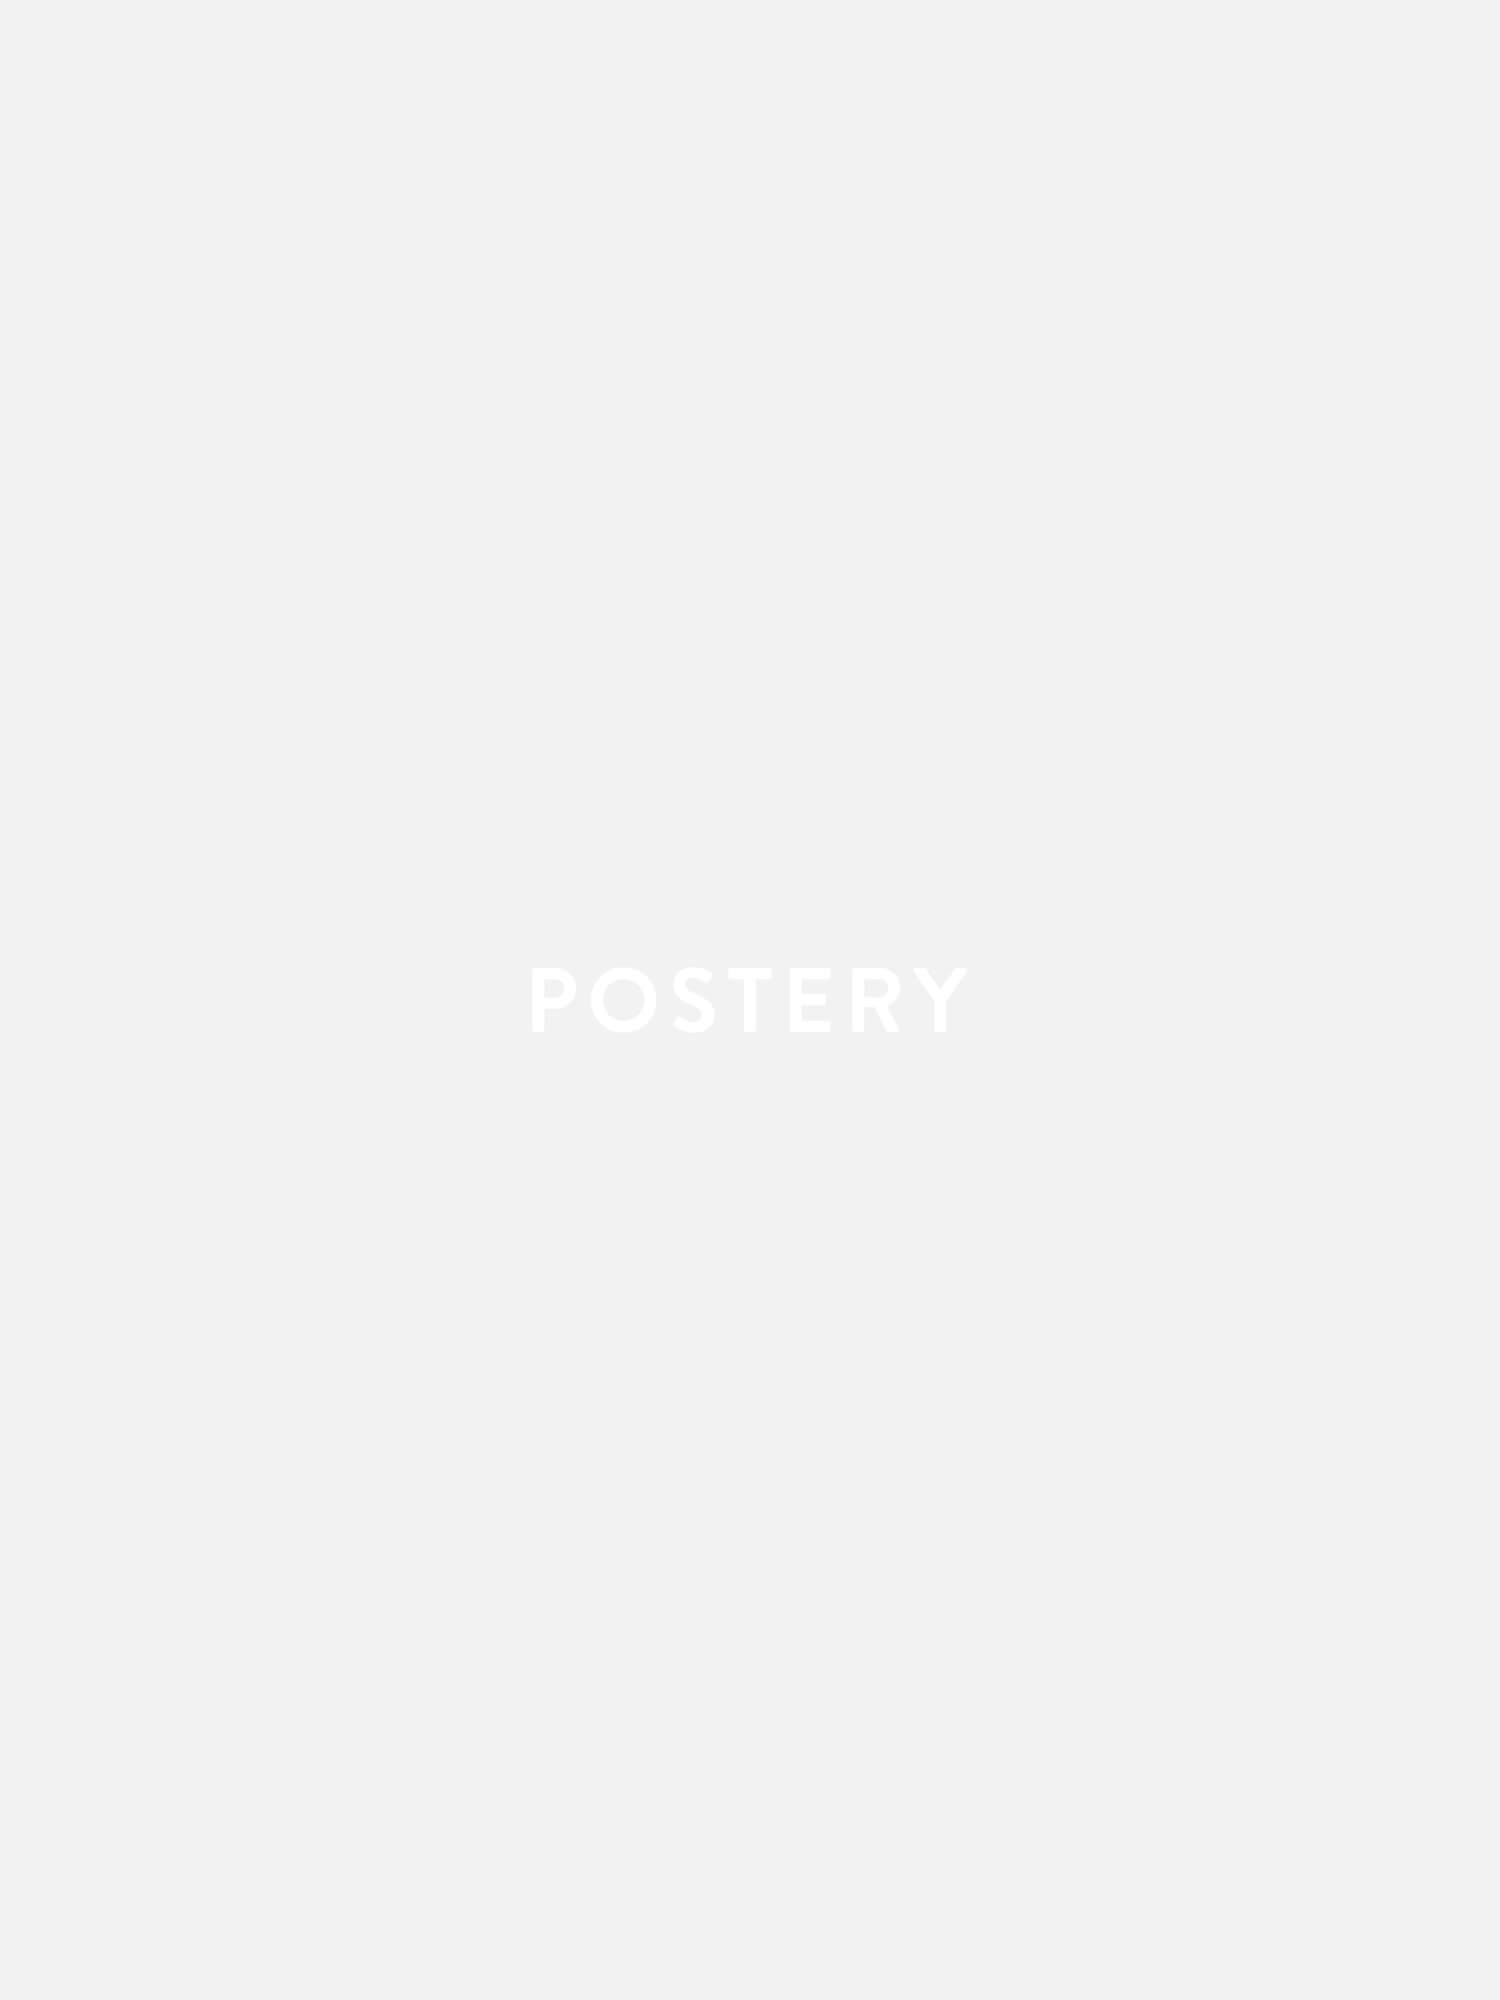 Bright Sky Palm Tree Poster